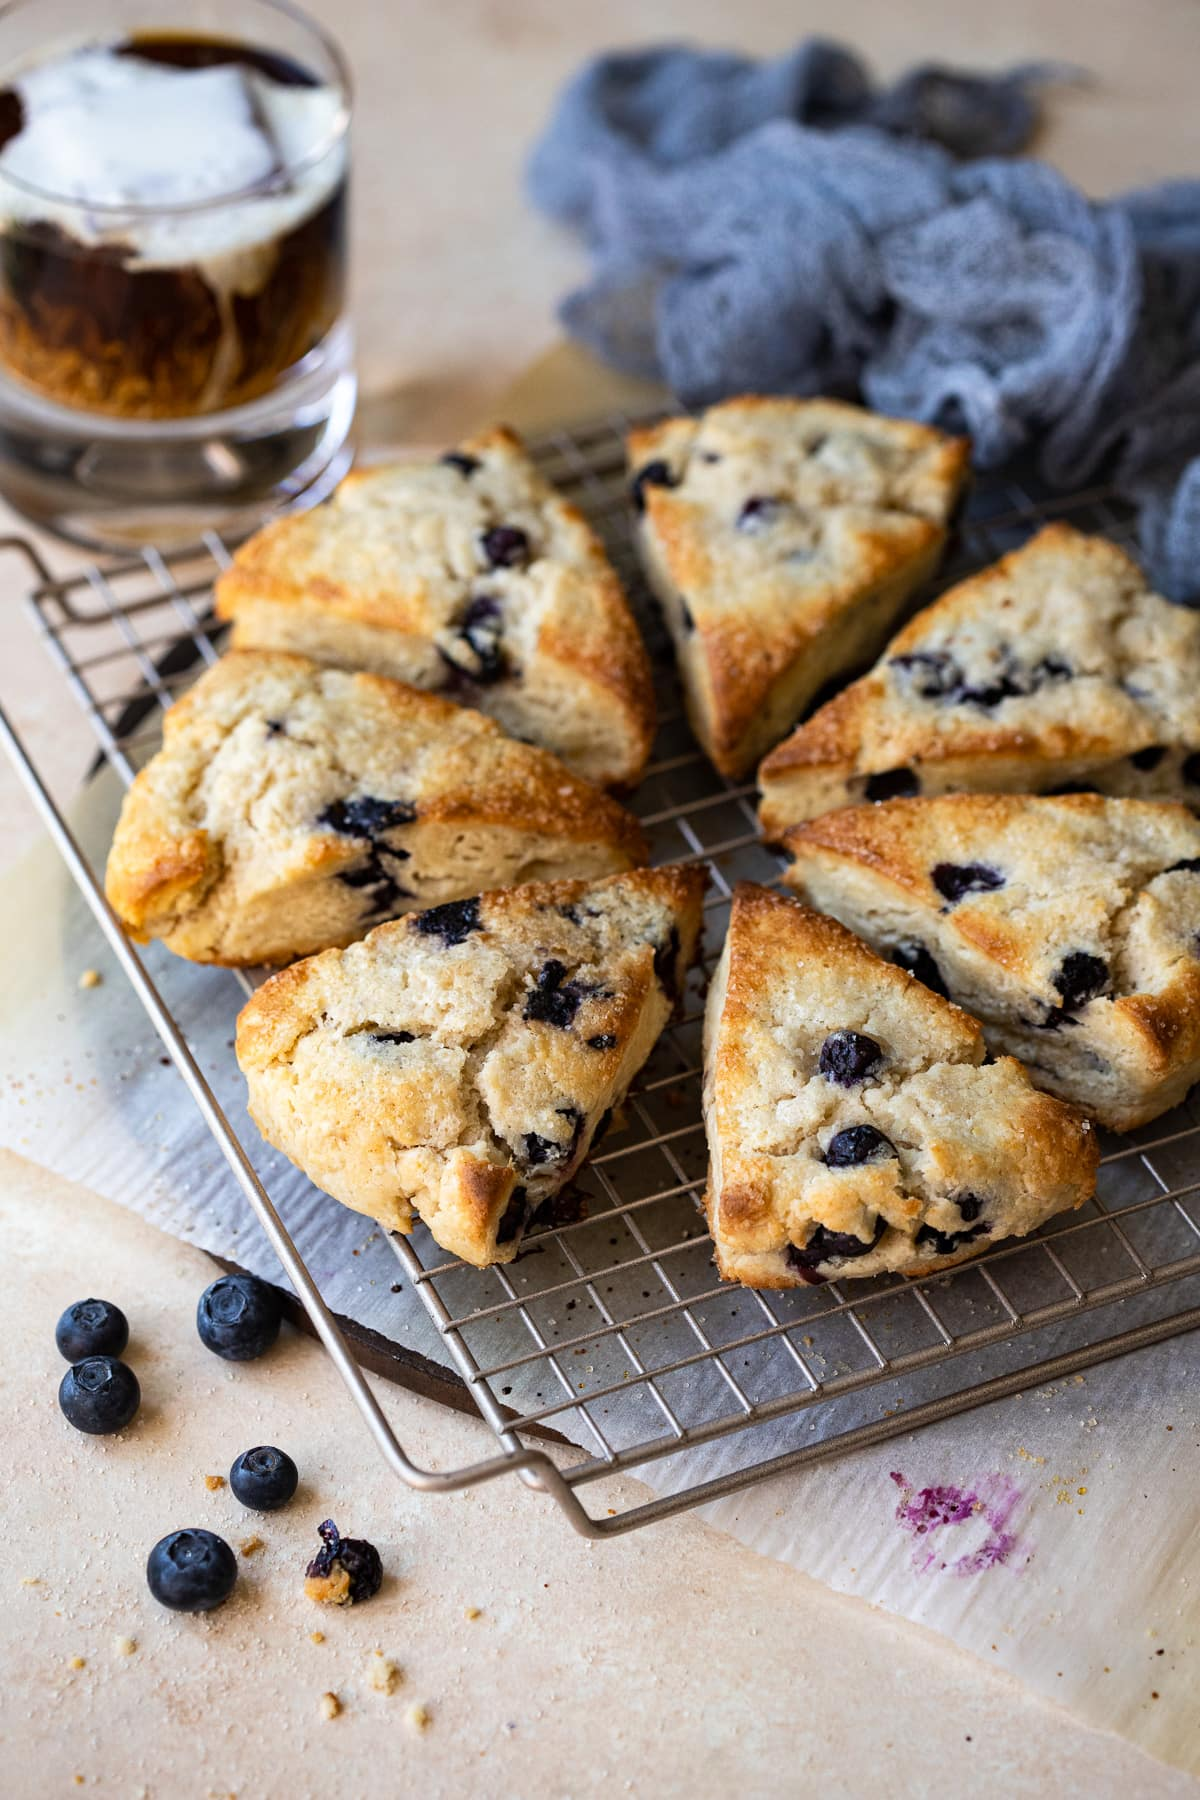 Blueberry scones on a wire rack, with iced coffee in the background.